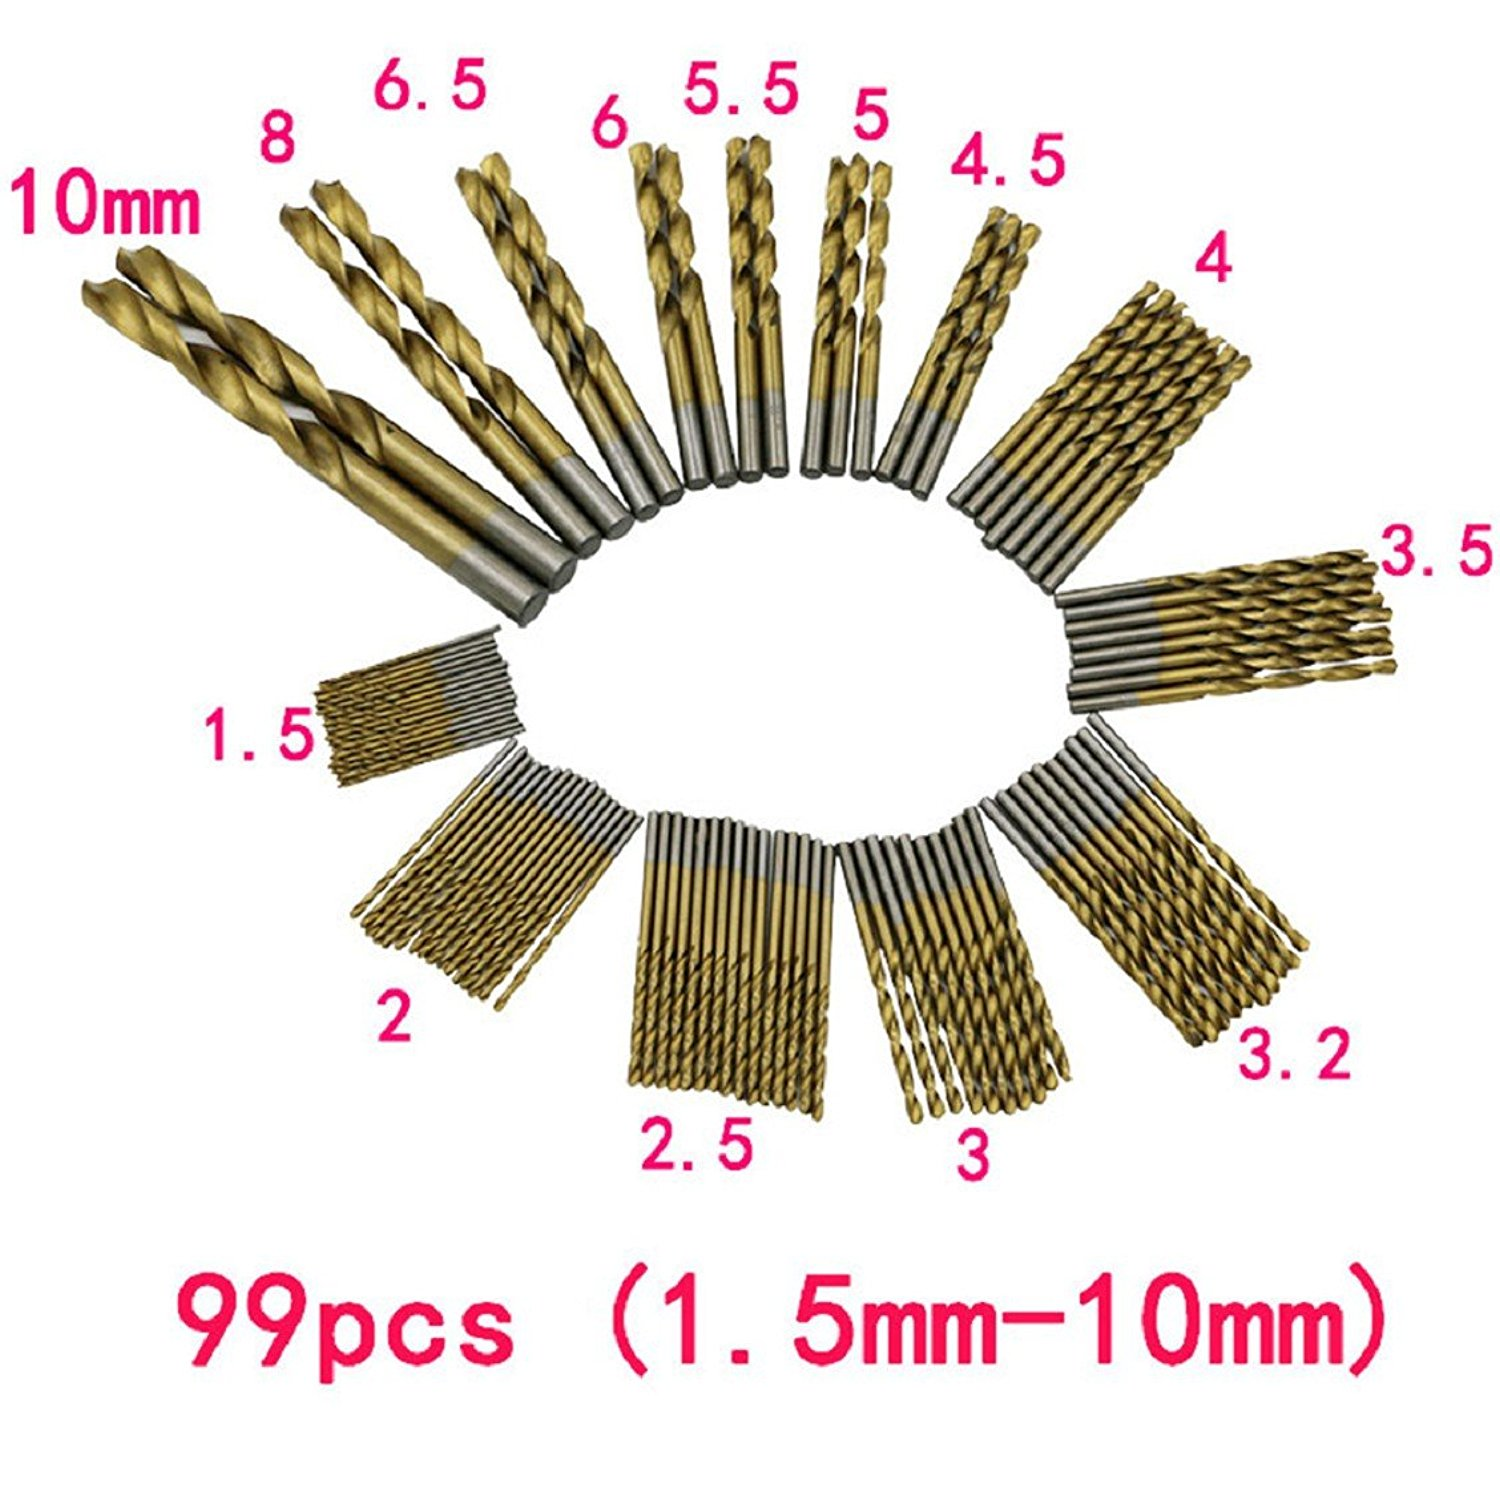 Naladoo 99pcs/Set Twist Drill Bit Set Saw Set HSS High Steel Titanium Coated Drill Woodworkin Tool 1.5-10mm For Cordless Screwdriver